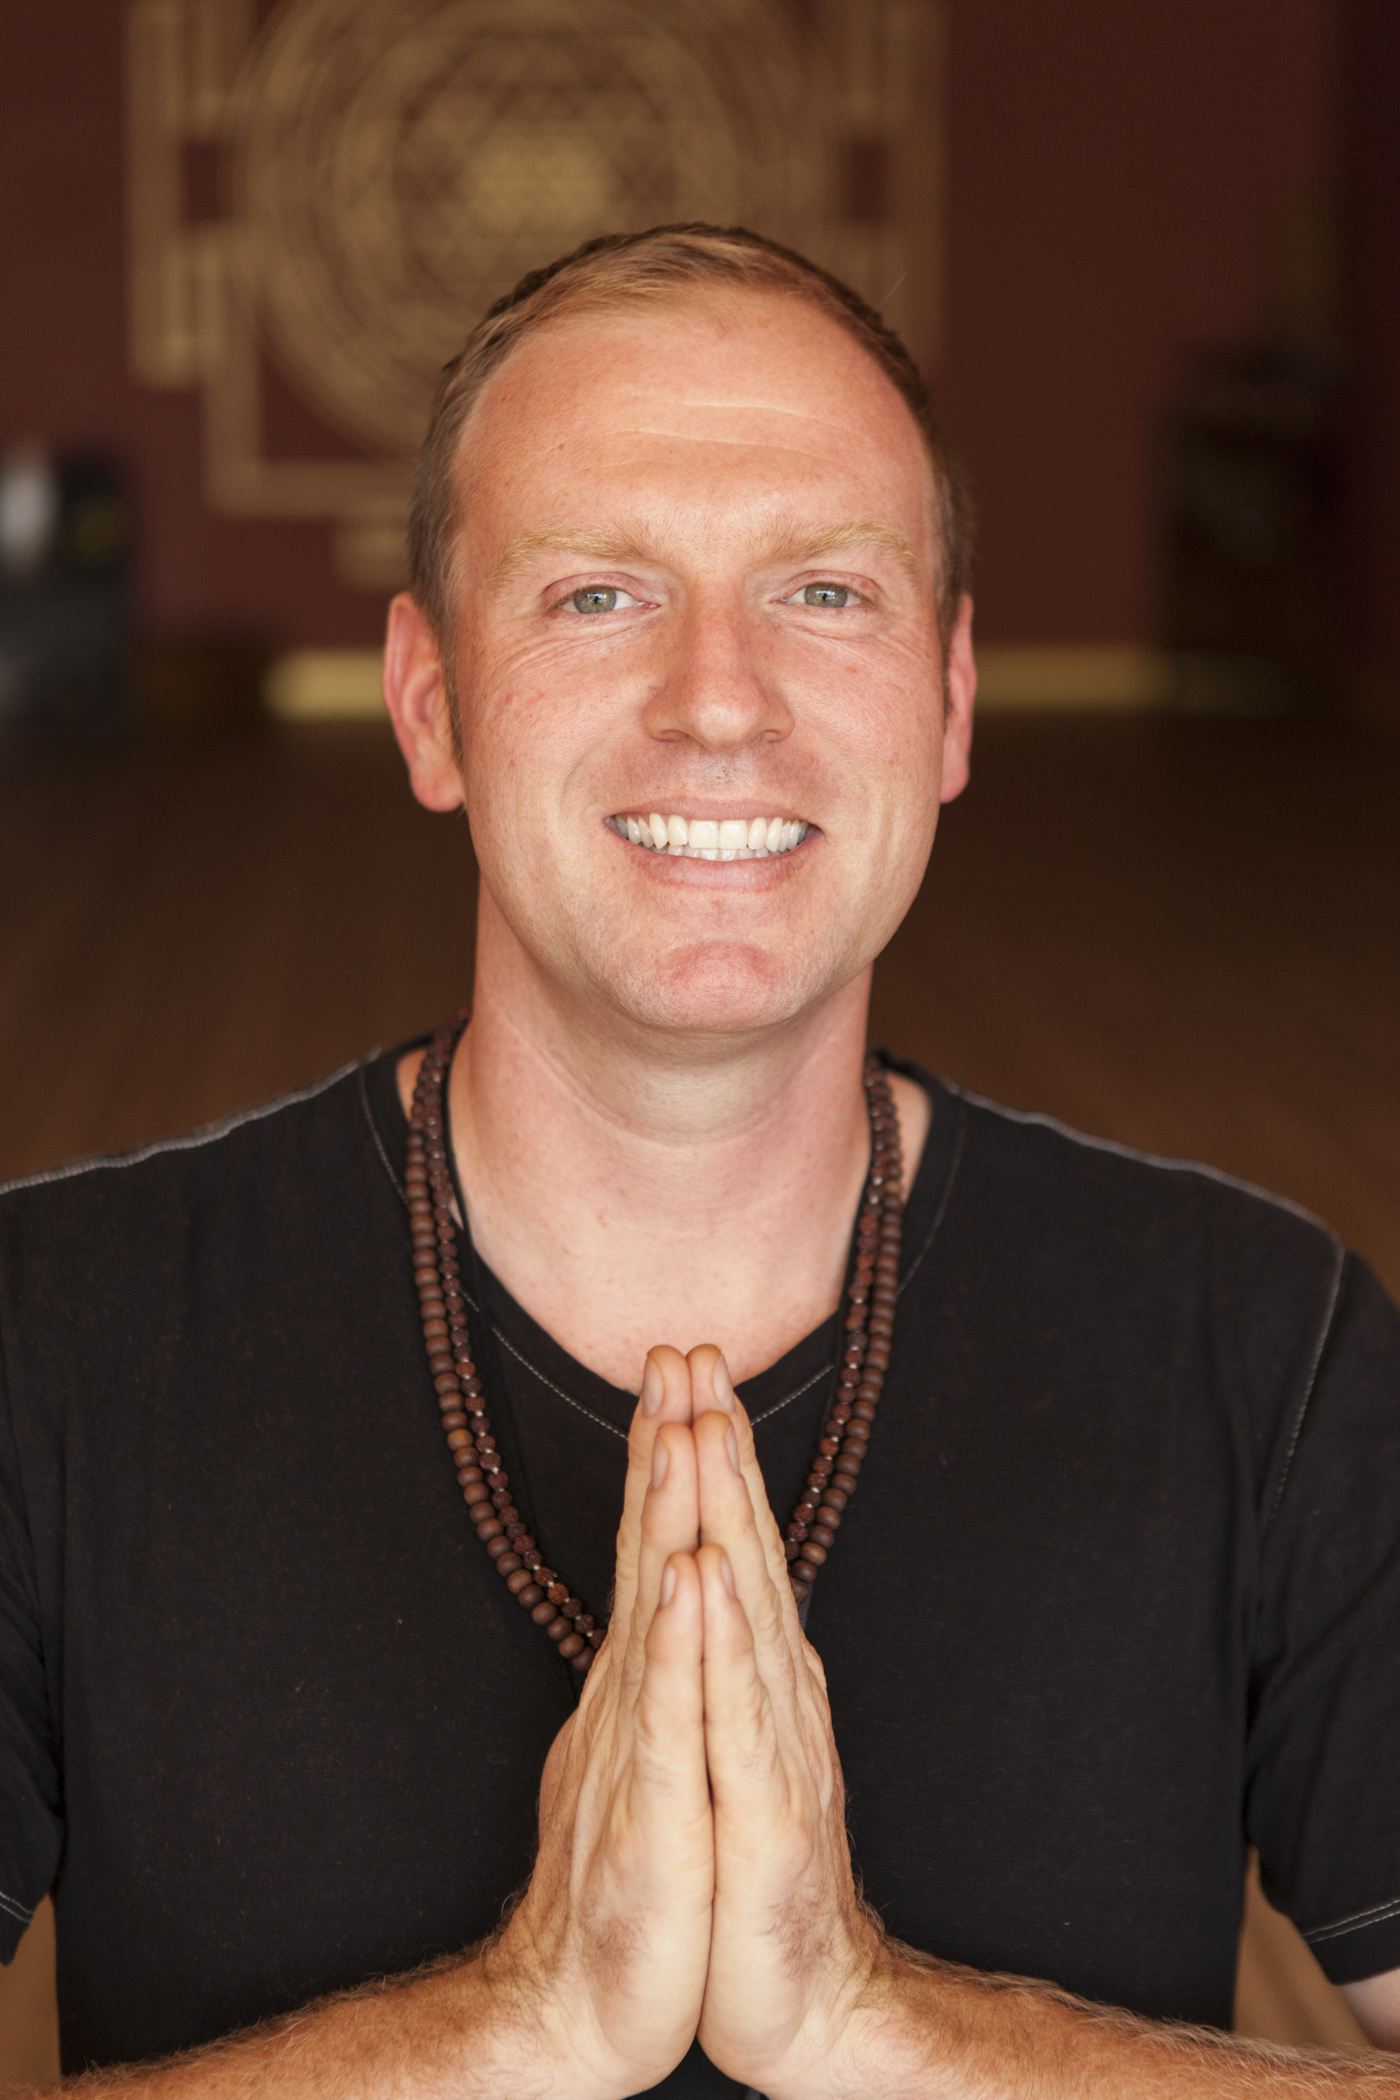 Jason Miller CMTHolistic Educator - With a passion for holistic ideals and the intention of bringing wellness to each member of his clientele, Jason Miller stands out as an experienced and well-versed holistic massage therapist. He is proficient in a wide range of massage & wellness modalities, such as neuromuscular deep tissue, structural balancing, athletic conditioning / rehabilitation, lymphatic / circulatory Tx, advanced cupping therapies, NIR reiki energy healing and the list goes on. A certified leader, he has held numerous workshops, continued education training's, and has lobbied at state and national levels for education. He is the Program Director at Panacea Holistic Institute and the southwest educator for the ICTA International Cupping Therapy Association.Jason is a certified massage therapist, internationally certified cupping therapist, yoga instructor, educator, sound healer, light & energy worker, wellness advocate, visionary, sensei level Reiki practitioner and conscious business owner. He strives to engage in expanding his growing knowledge & understanding in the art and journey of healing.He has worked at USATF indoor & outdoor national masters champions and worlds since 2010. Jason competes for So Cal Track Club, Winning nation championships in Shot put and other throw events in USATF track and field competition. His working experience as an athletic therapist includes ironman, triathlons, marathons, national and international track and field championships, community walk / 5k / 10k events and field games.Jason's personable manner along with his altruistic ethics has resulted in many referrals as well as a great rapport with clients and fellow therapists. He continues to develop his skills as a holistic therapist, instructor and yogi in Long Beach, California, focusing on holistic care and community well-being.